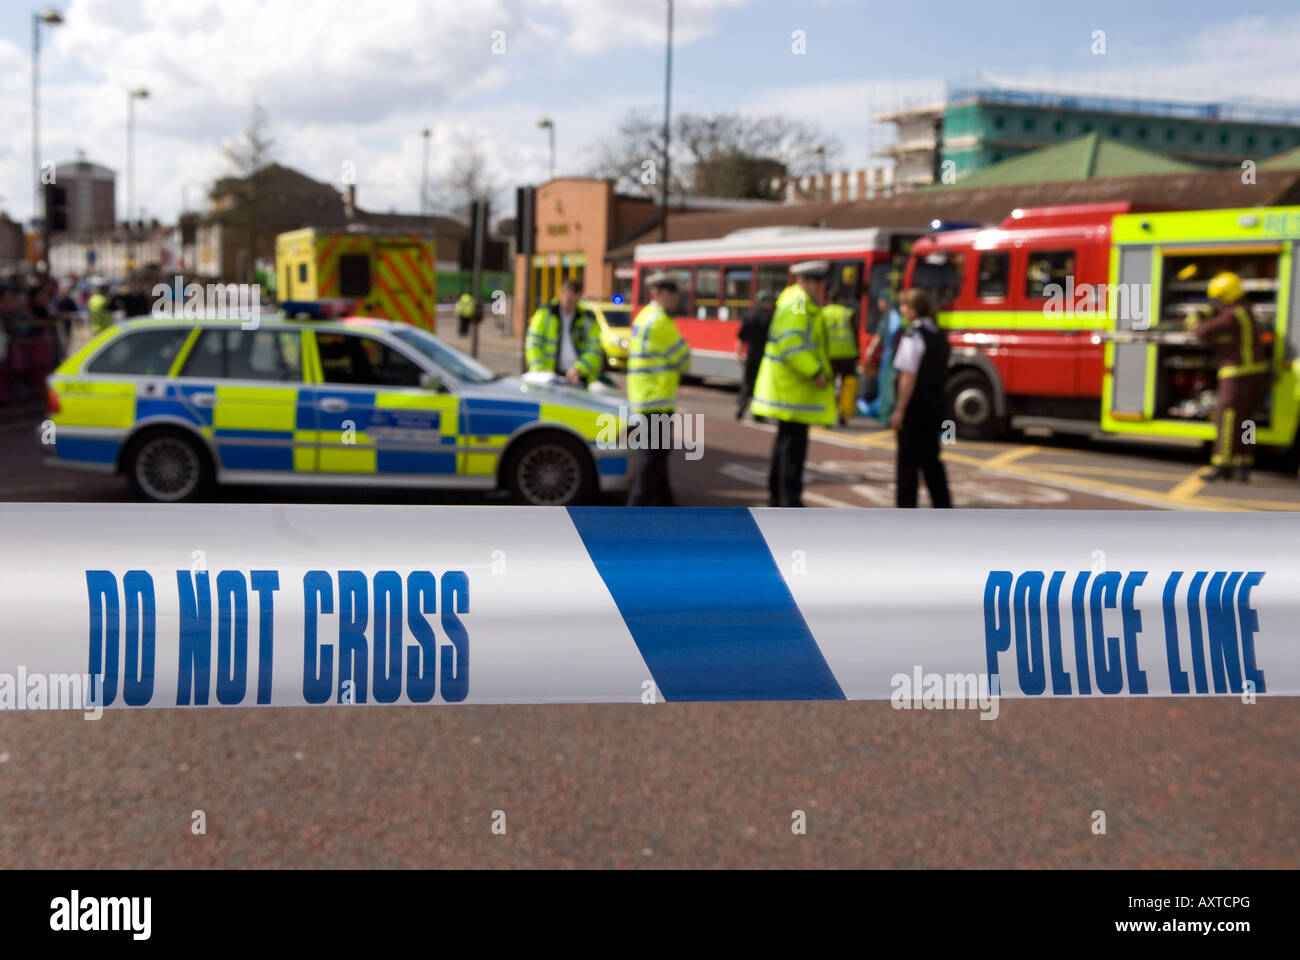 Police officers and cordon sign at the scene of a road traffic accident (RTA), Hounslow, Middlesex, UK. 30th March - Stock Image